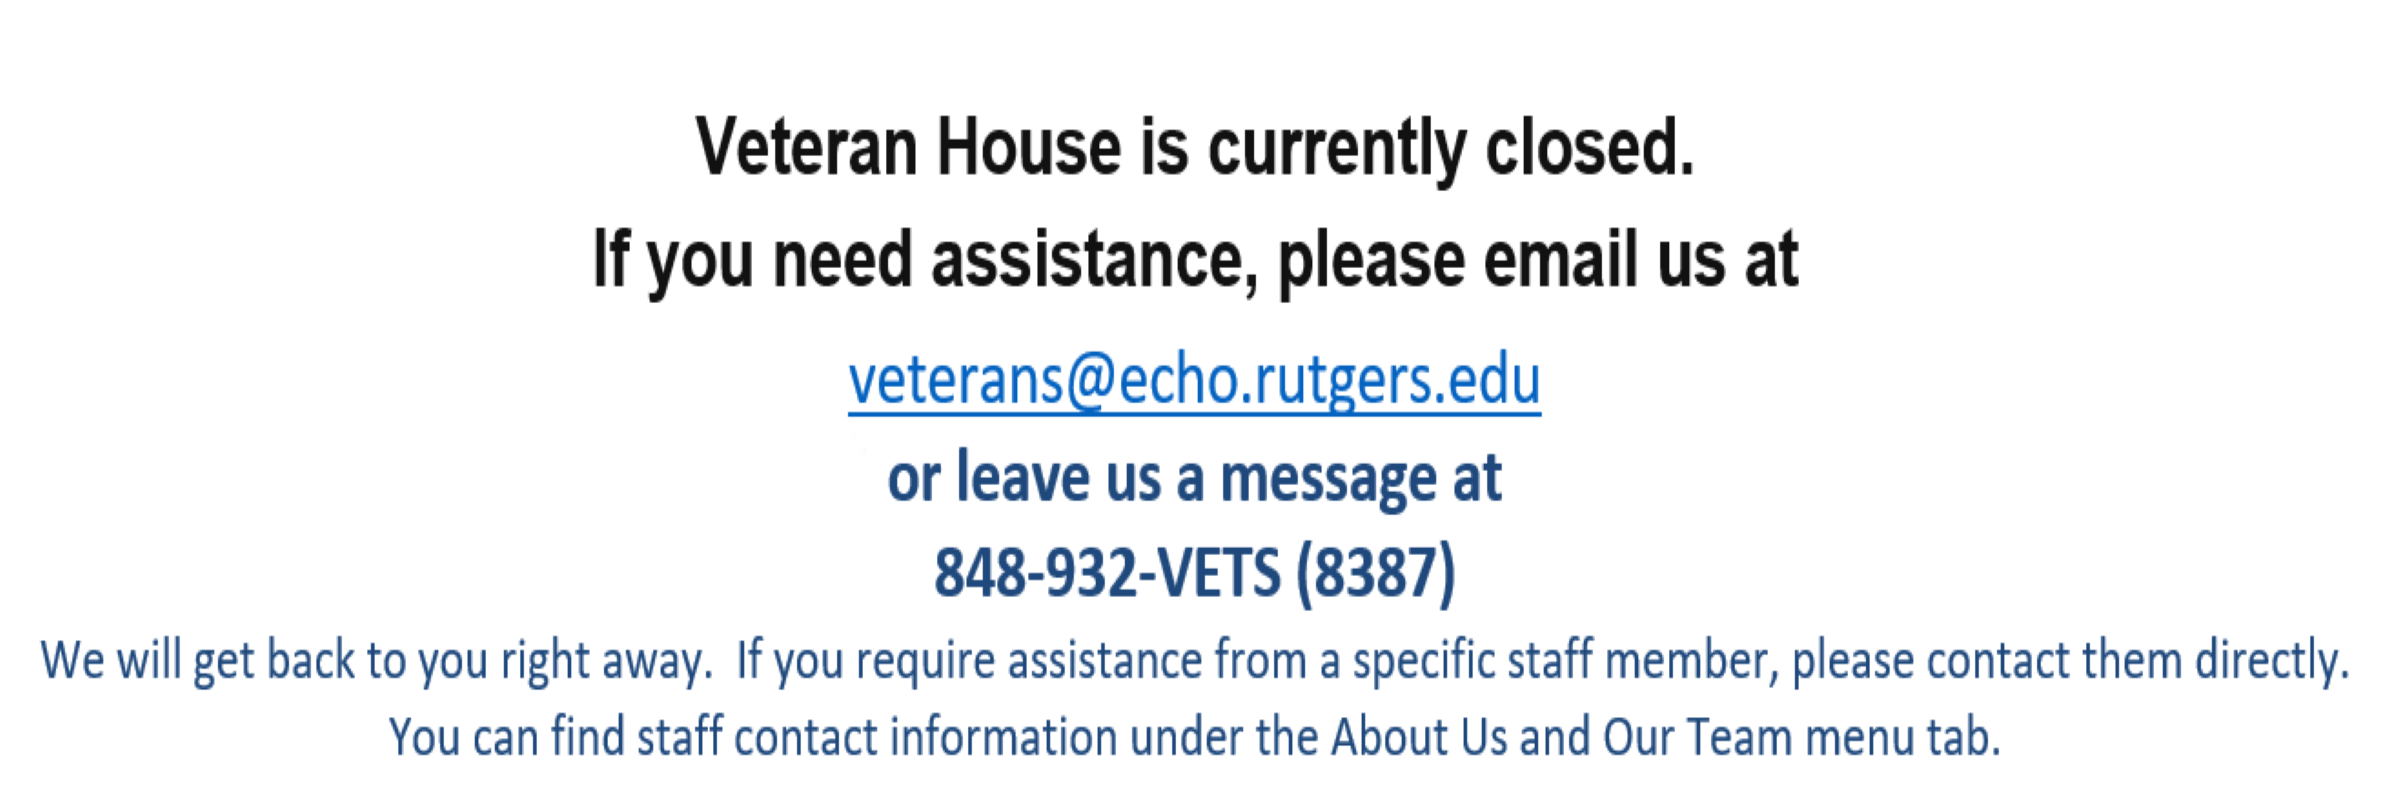 The Veterans House is Currently closed. Please email veterans@echo.rutgers.edu for all requests.